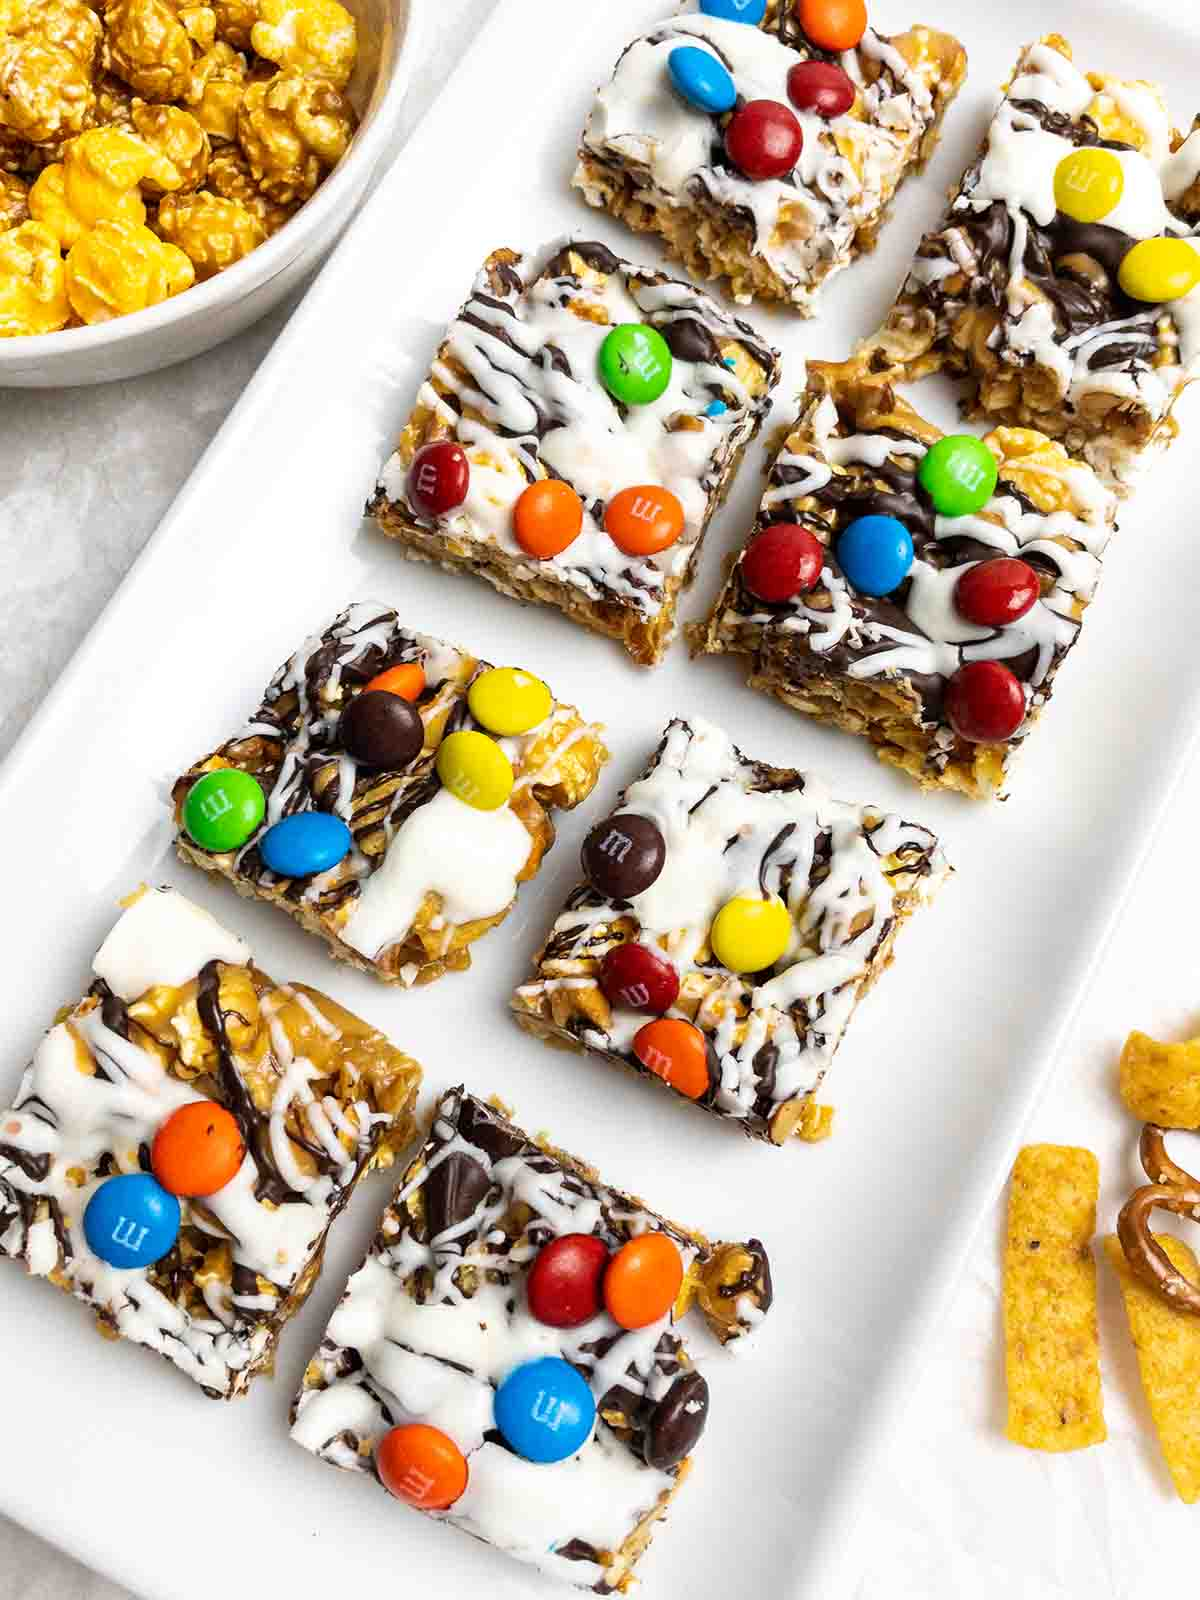 Sweet & Salty Popcorn Bars with Chocolate Drizzle